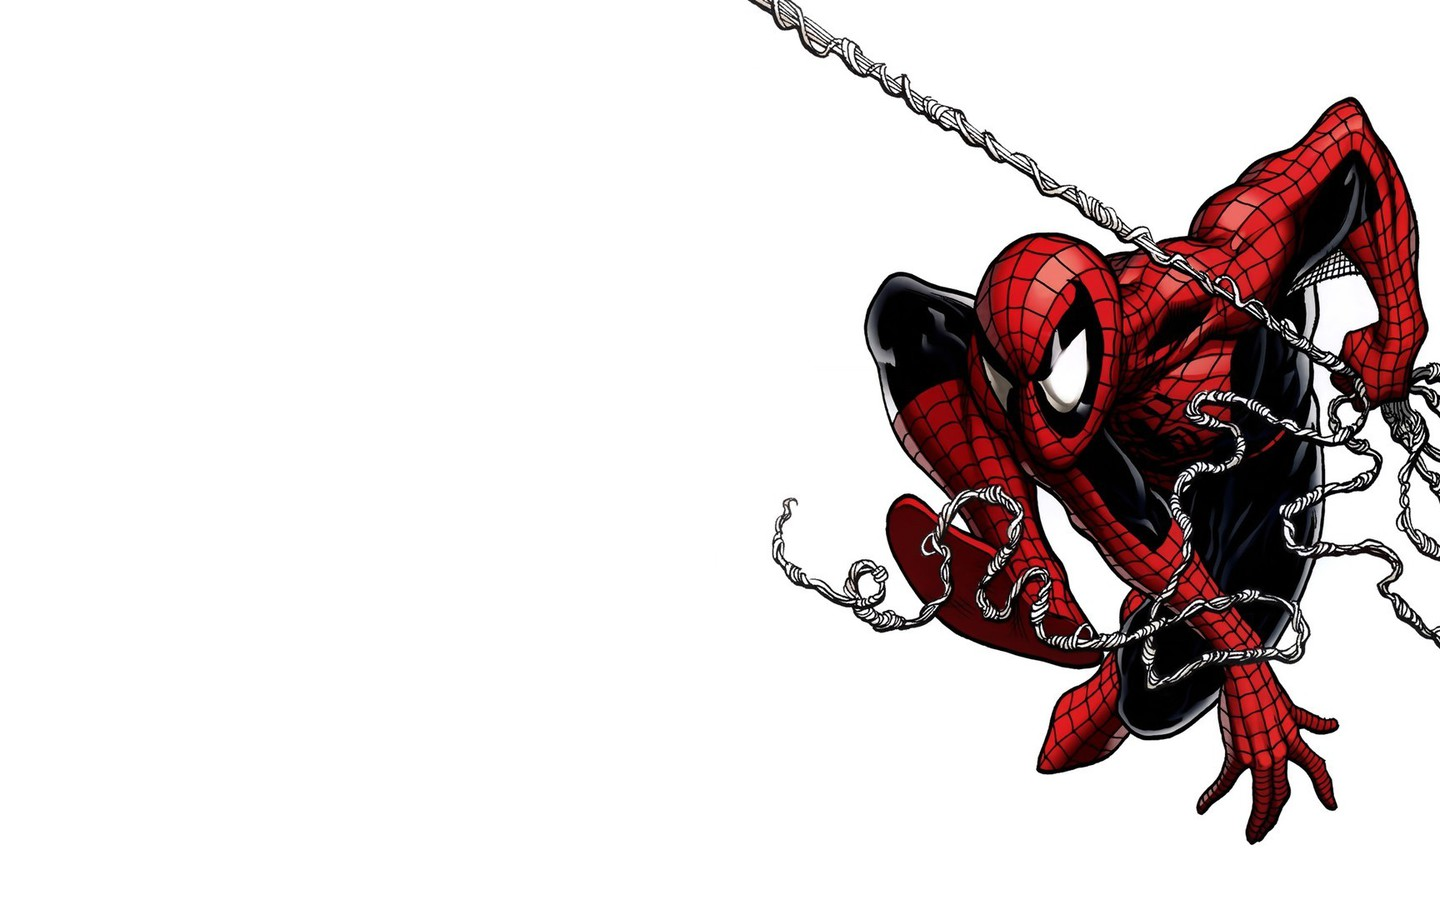 11 Best Hd Wallpapers From The Marvel Universe That You: Comics Spider-man Marvel Wallpaper